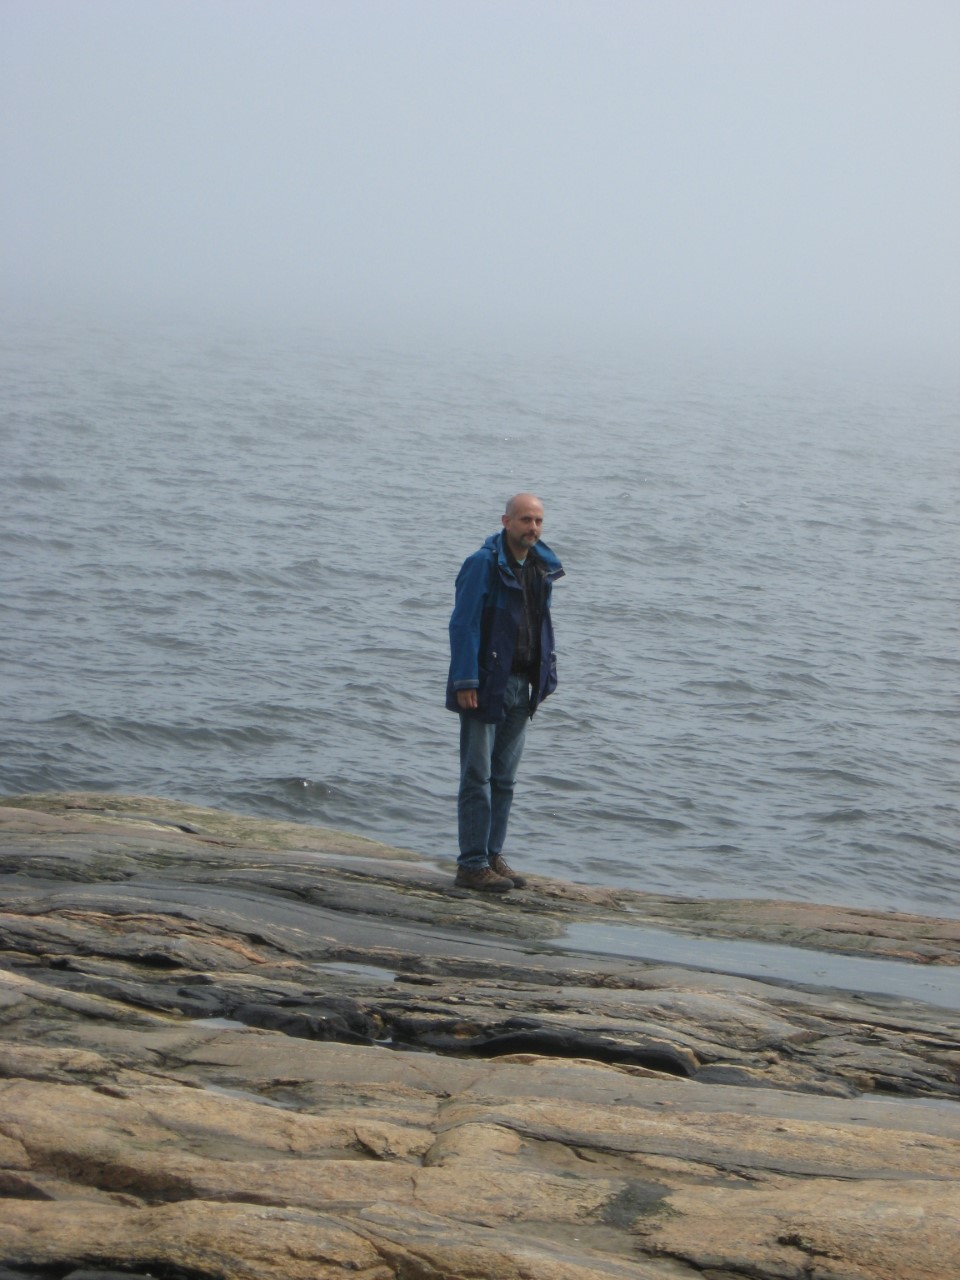 Aziz Choudry stands on a rocky beach with a large body of water behind him. He wears a dark blue rain coat and blue jeans.